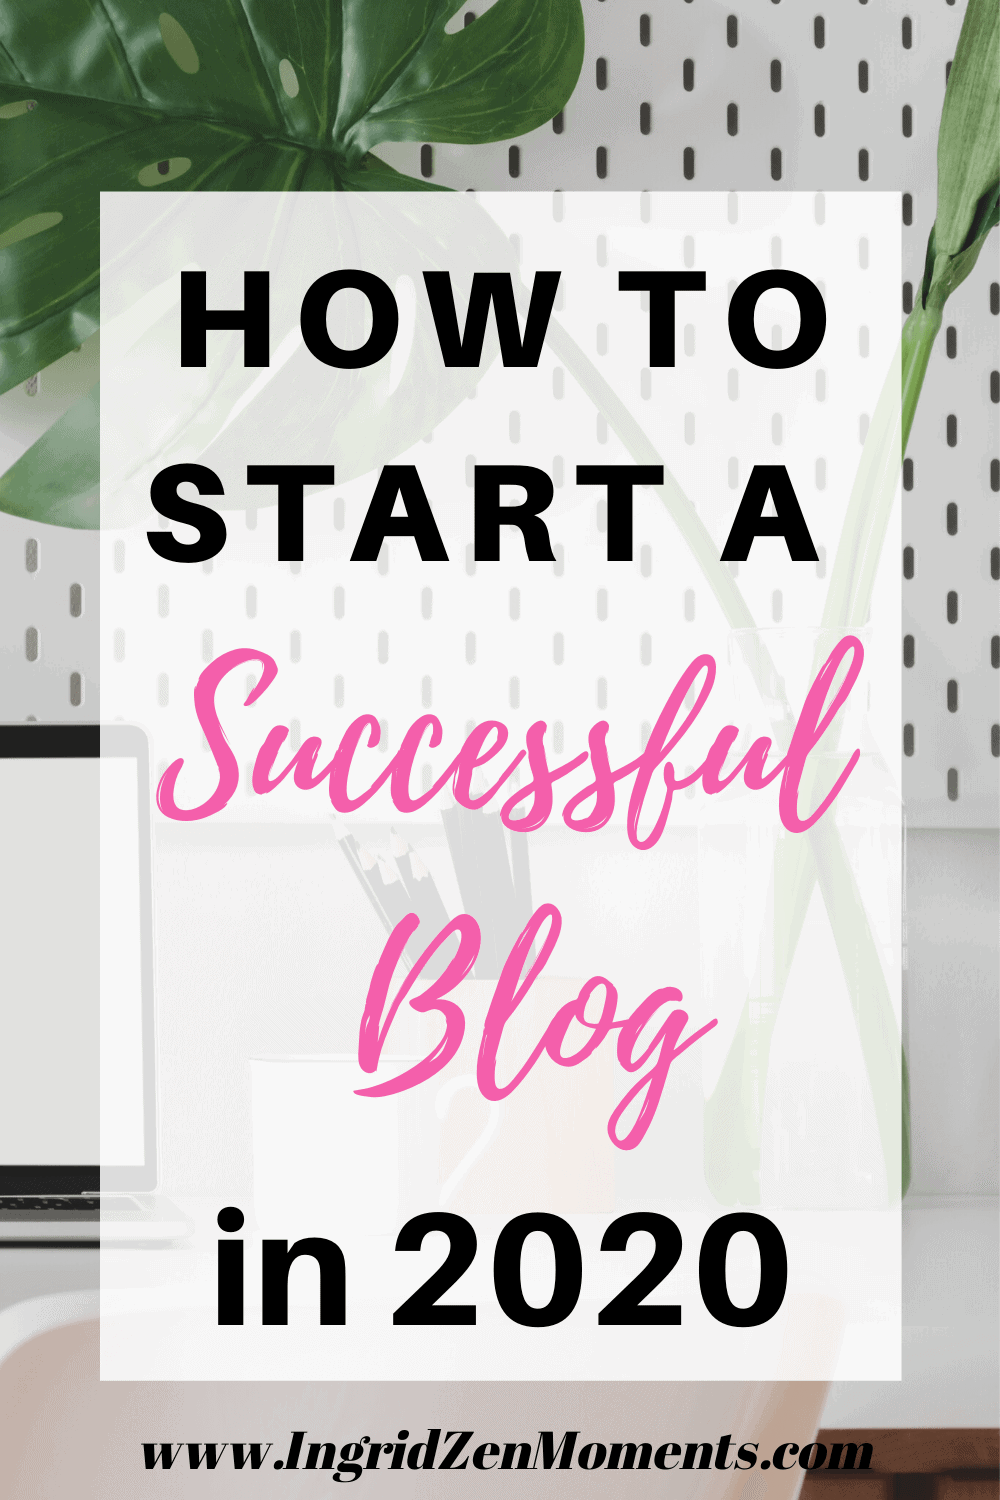 Do you want to know how to start a blog in 2020 that will both be successful and make money? When I first started my blog I knew nothing about blogging and I've made so many blogging mistakes I don't want to to make. Read this beginners guide to starting a blog in 2020 and make your dream come true and start a wordpress blog. #startablog #startingablog #bloggingforbegginers